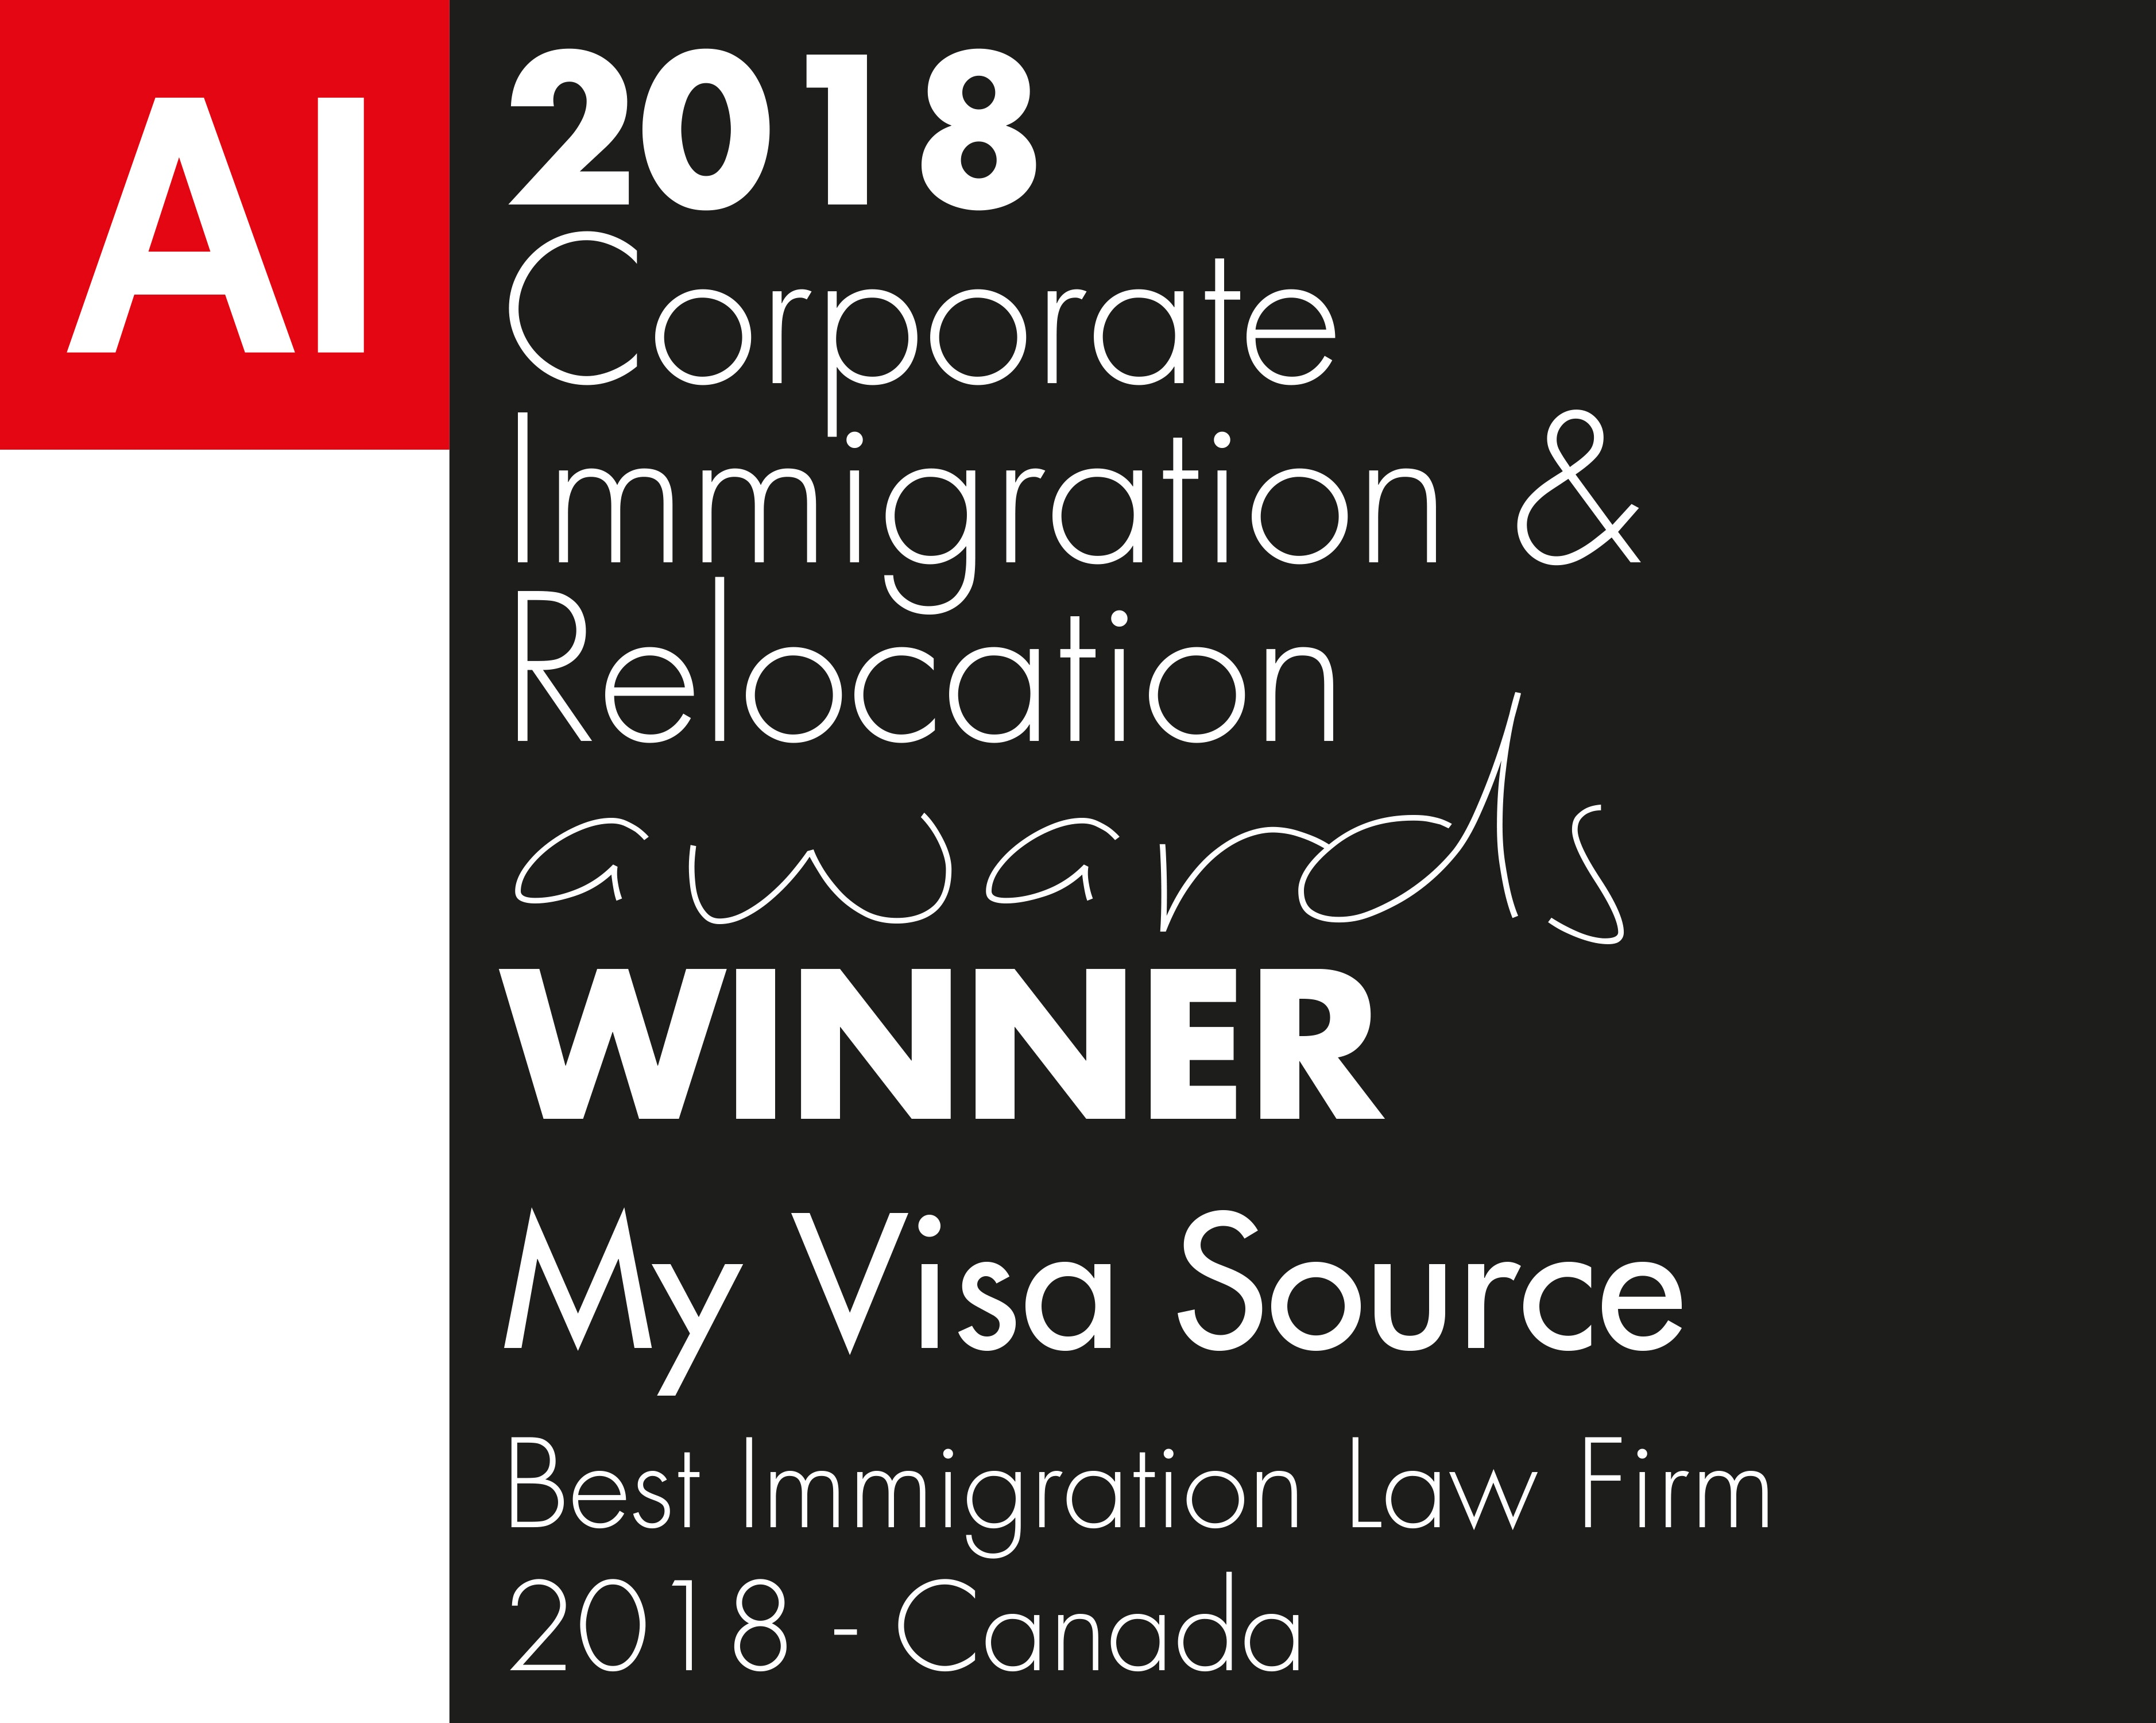 Express entry and provincial nominee programs my visa source law mdp 2015 2018 best immigration law firm canada solutioingenieria Images